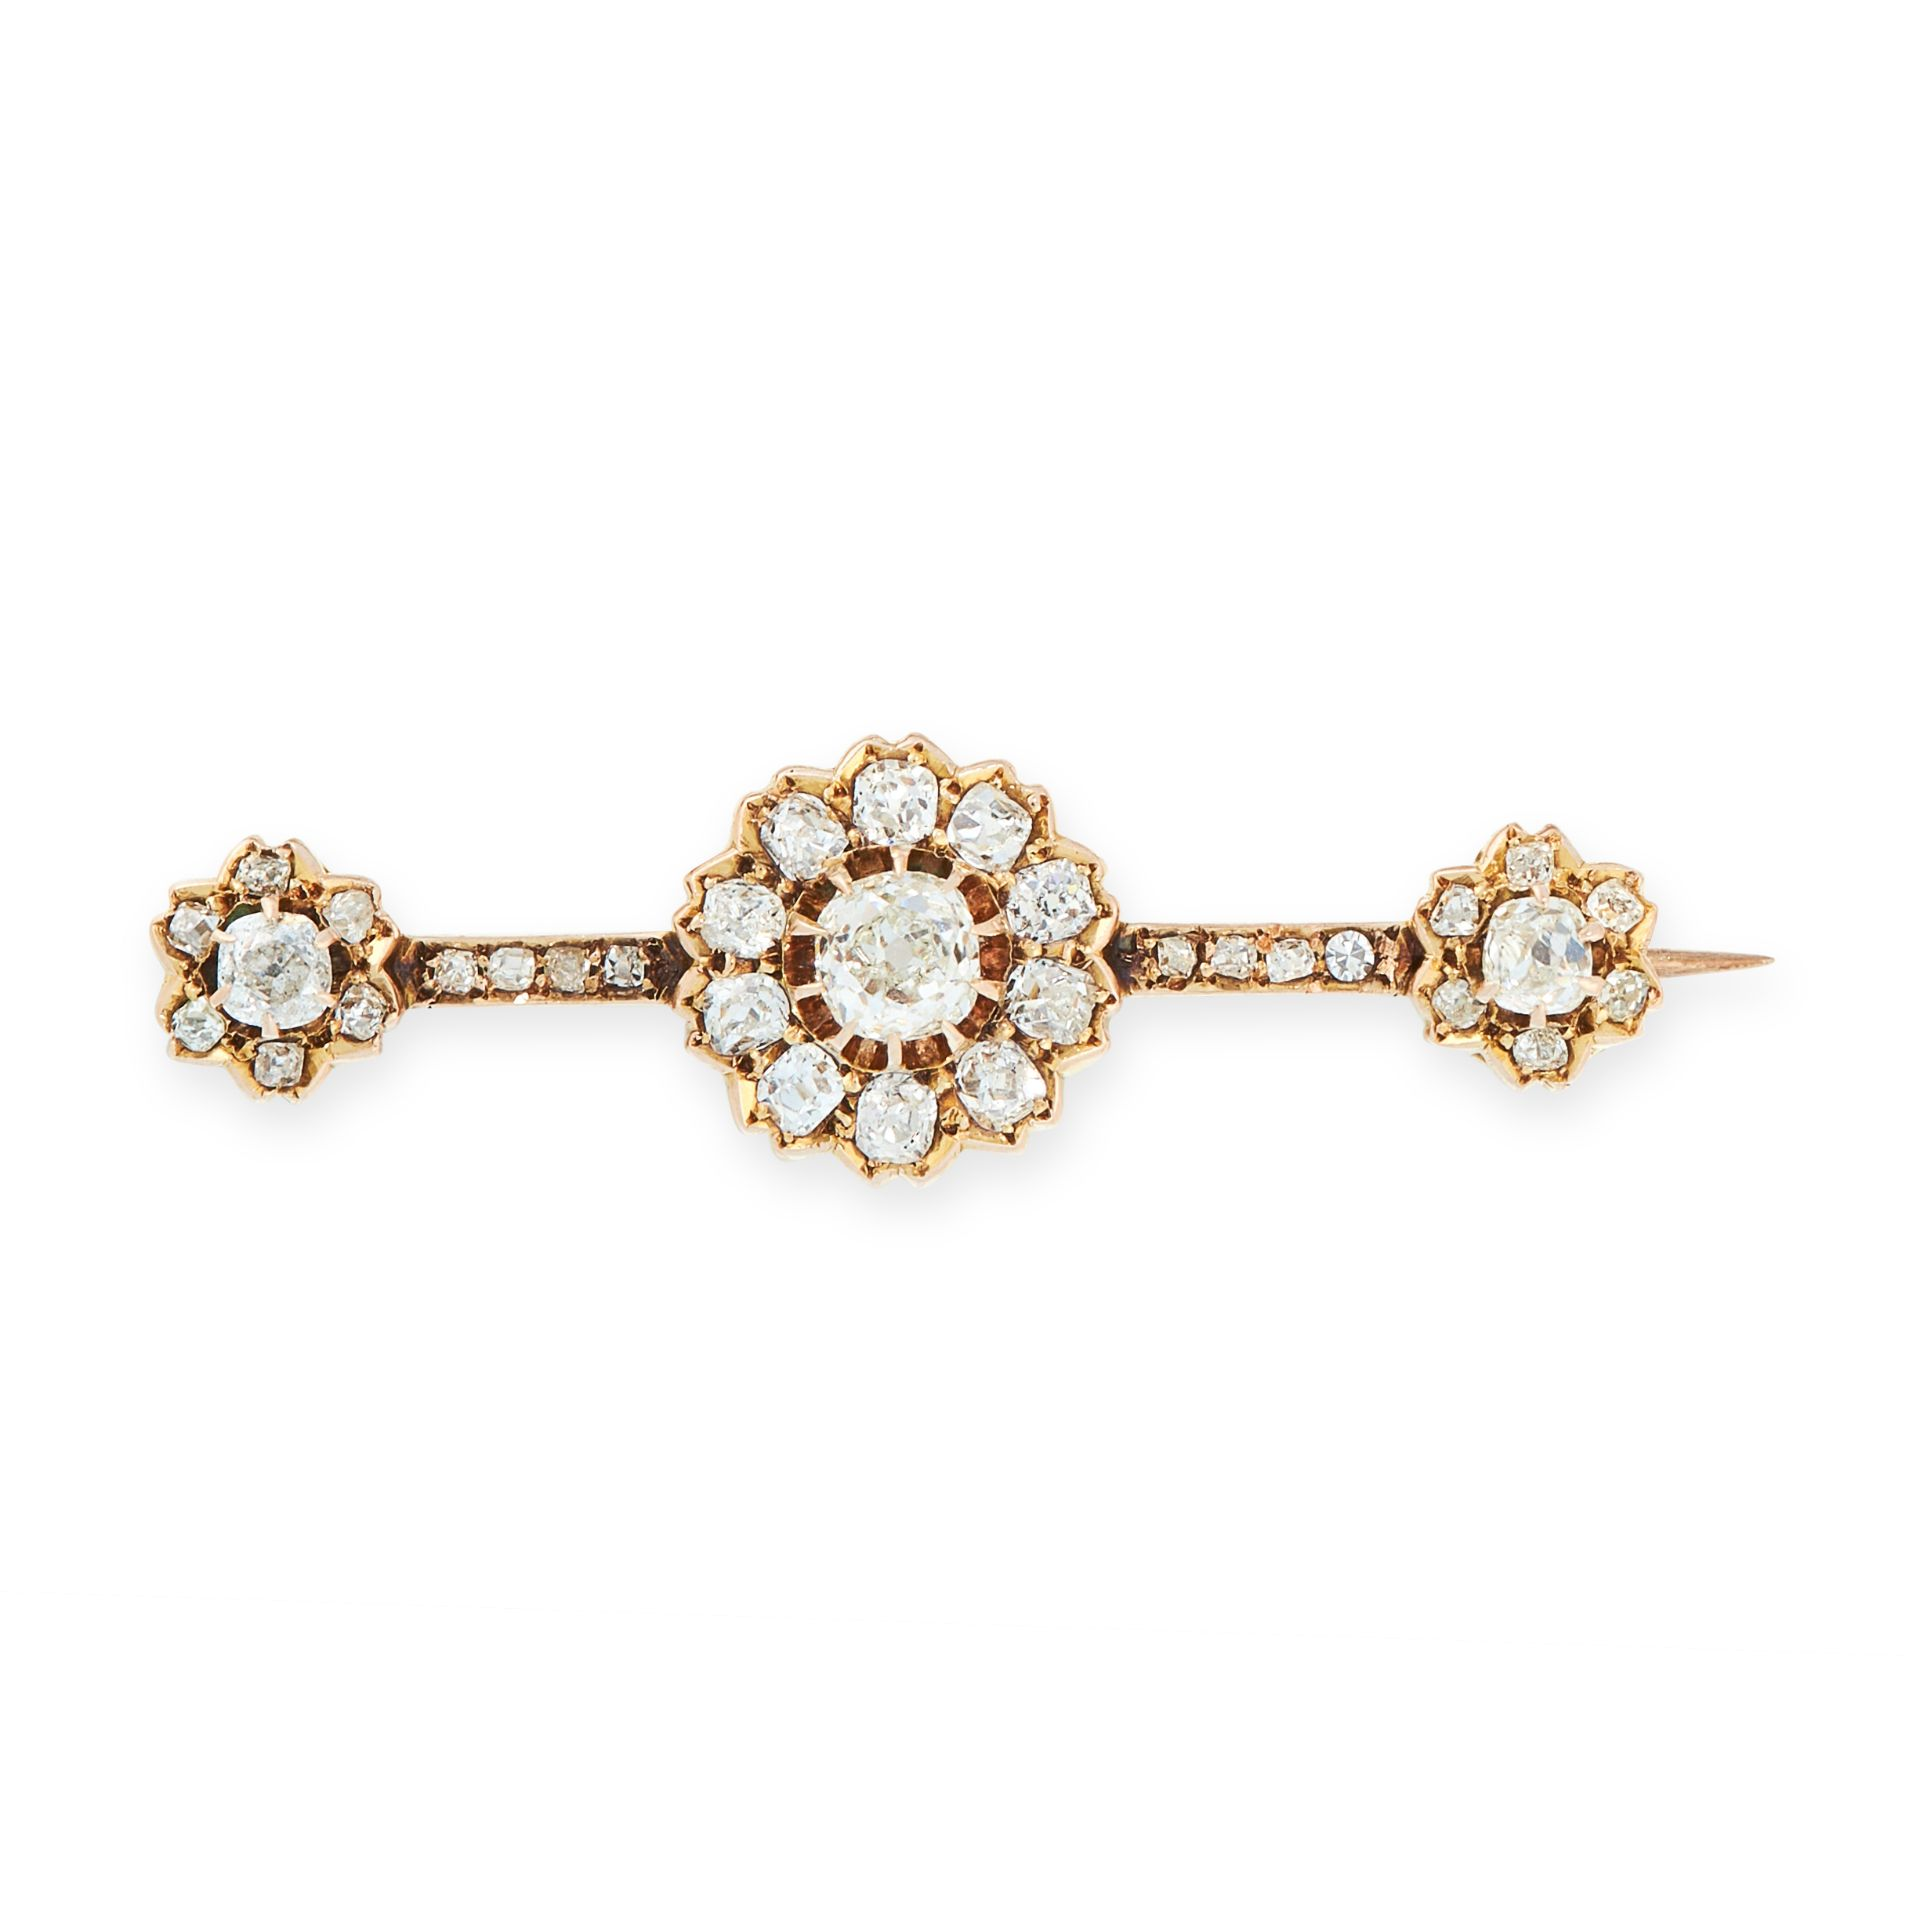 AN ANTIQUE DIAMOND BAR BROOCH, LATE 19TH CENTURY in high carat yellow gold, comprising a trio of